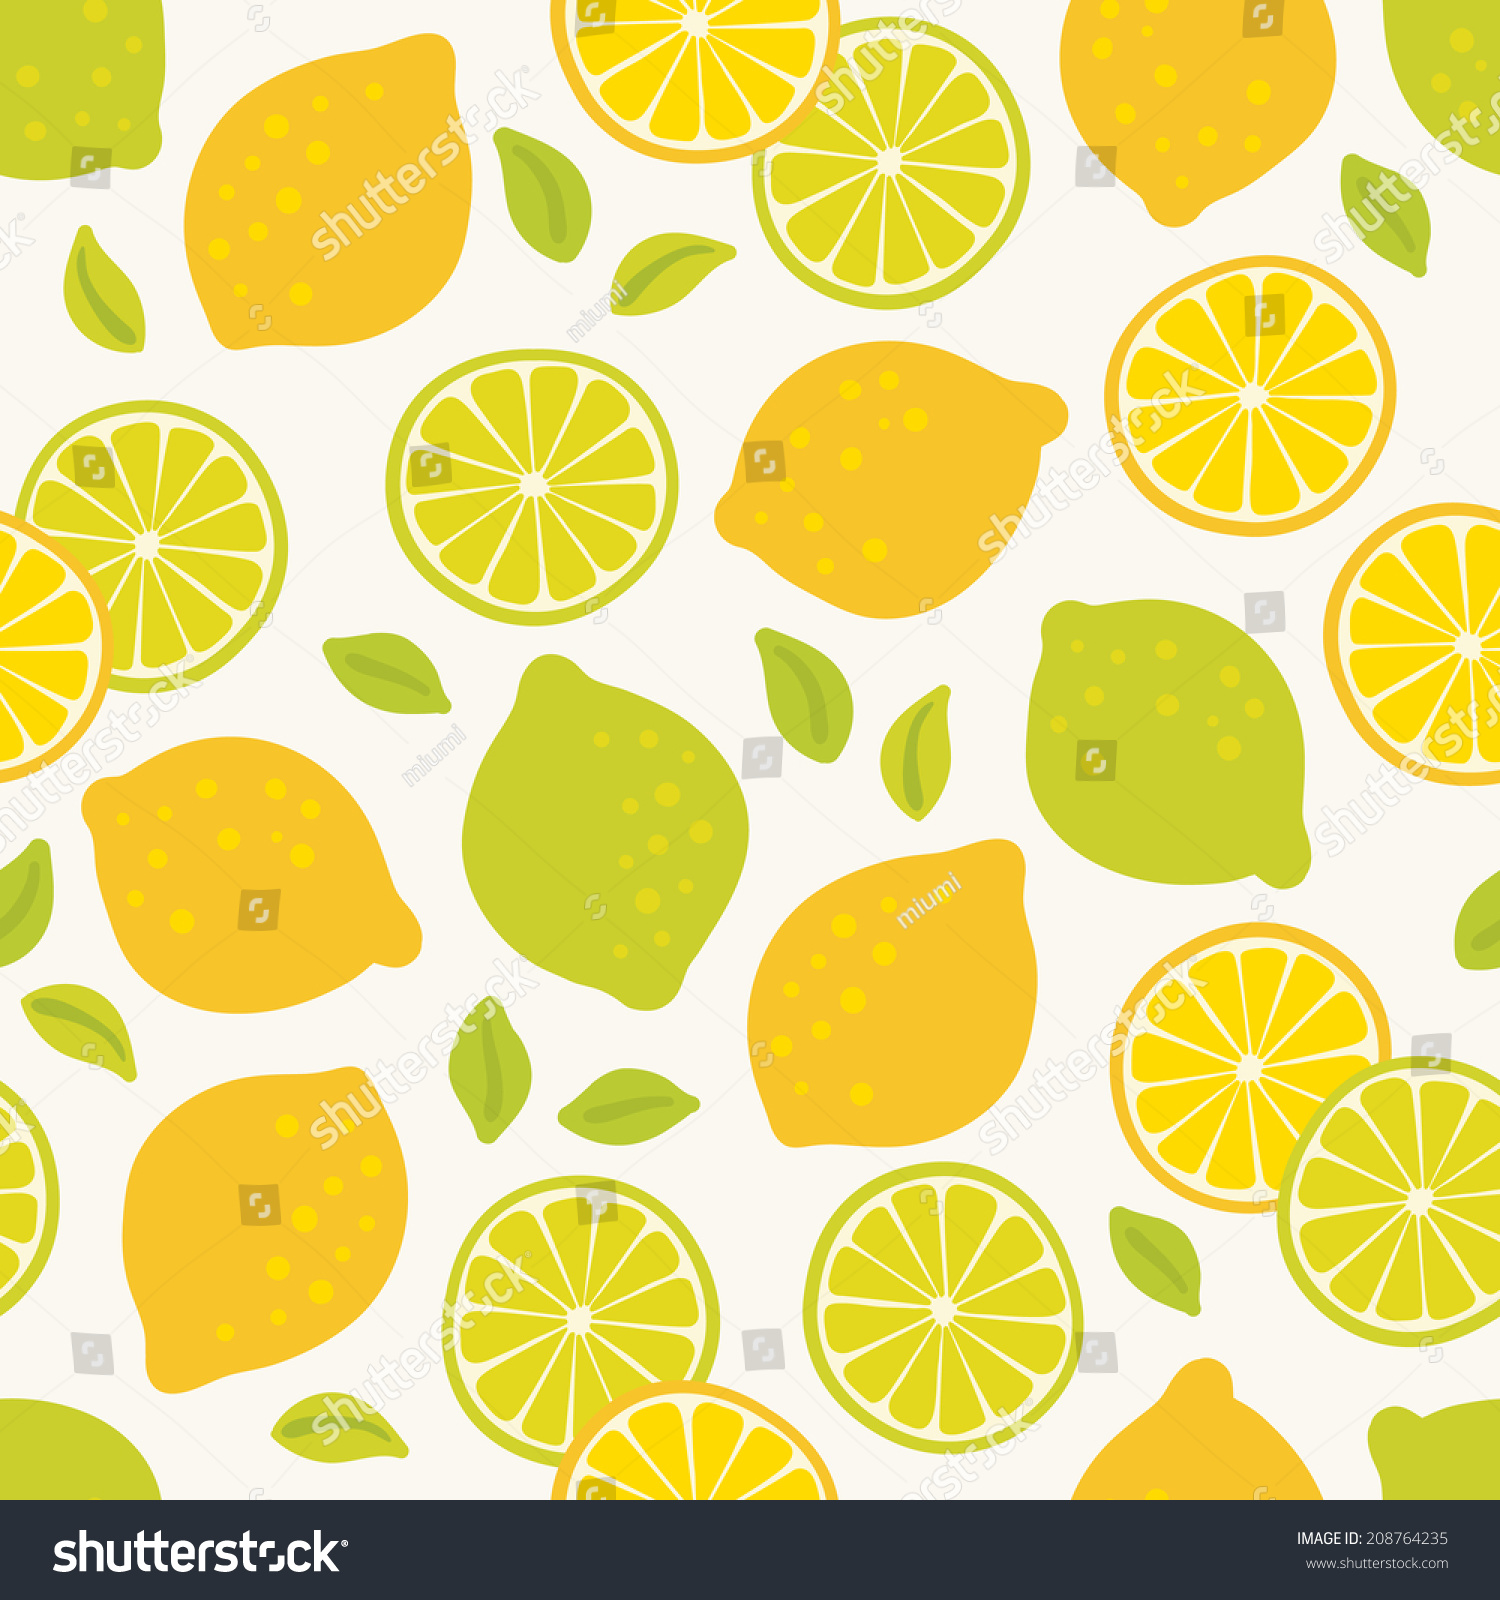 Wallpapers pattern fills web page backgrounds surface textures - Seamless Pattern With Lemons And Limes Perfect For Wallpapers Pattern Fills Web Page